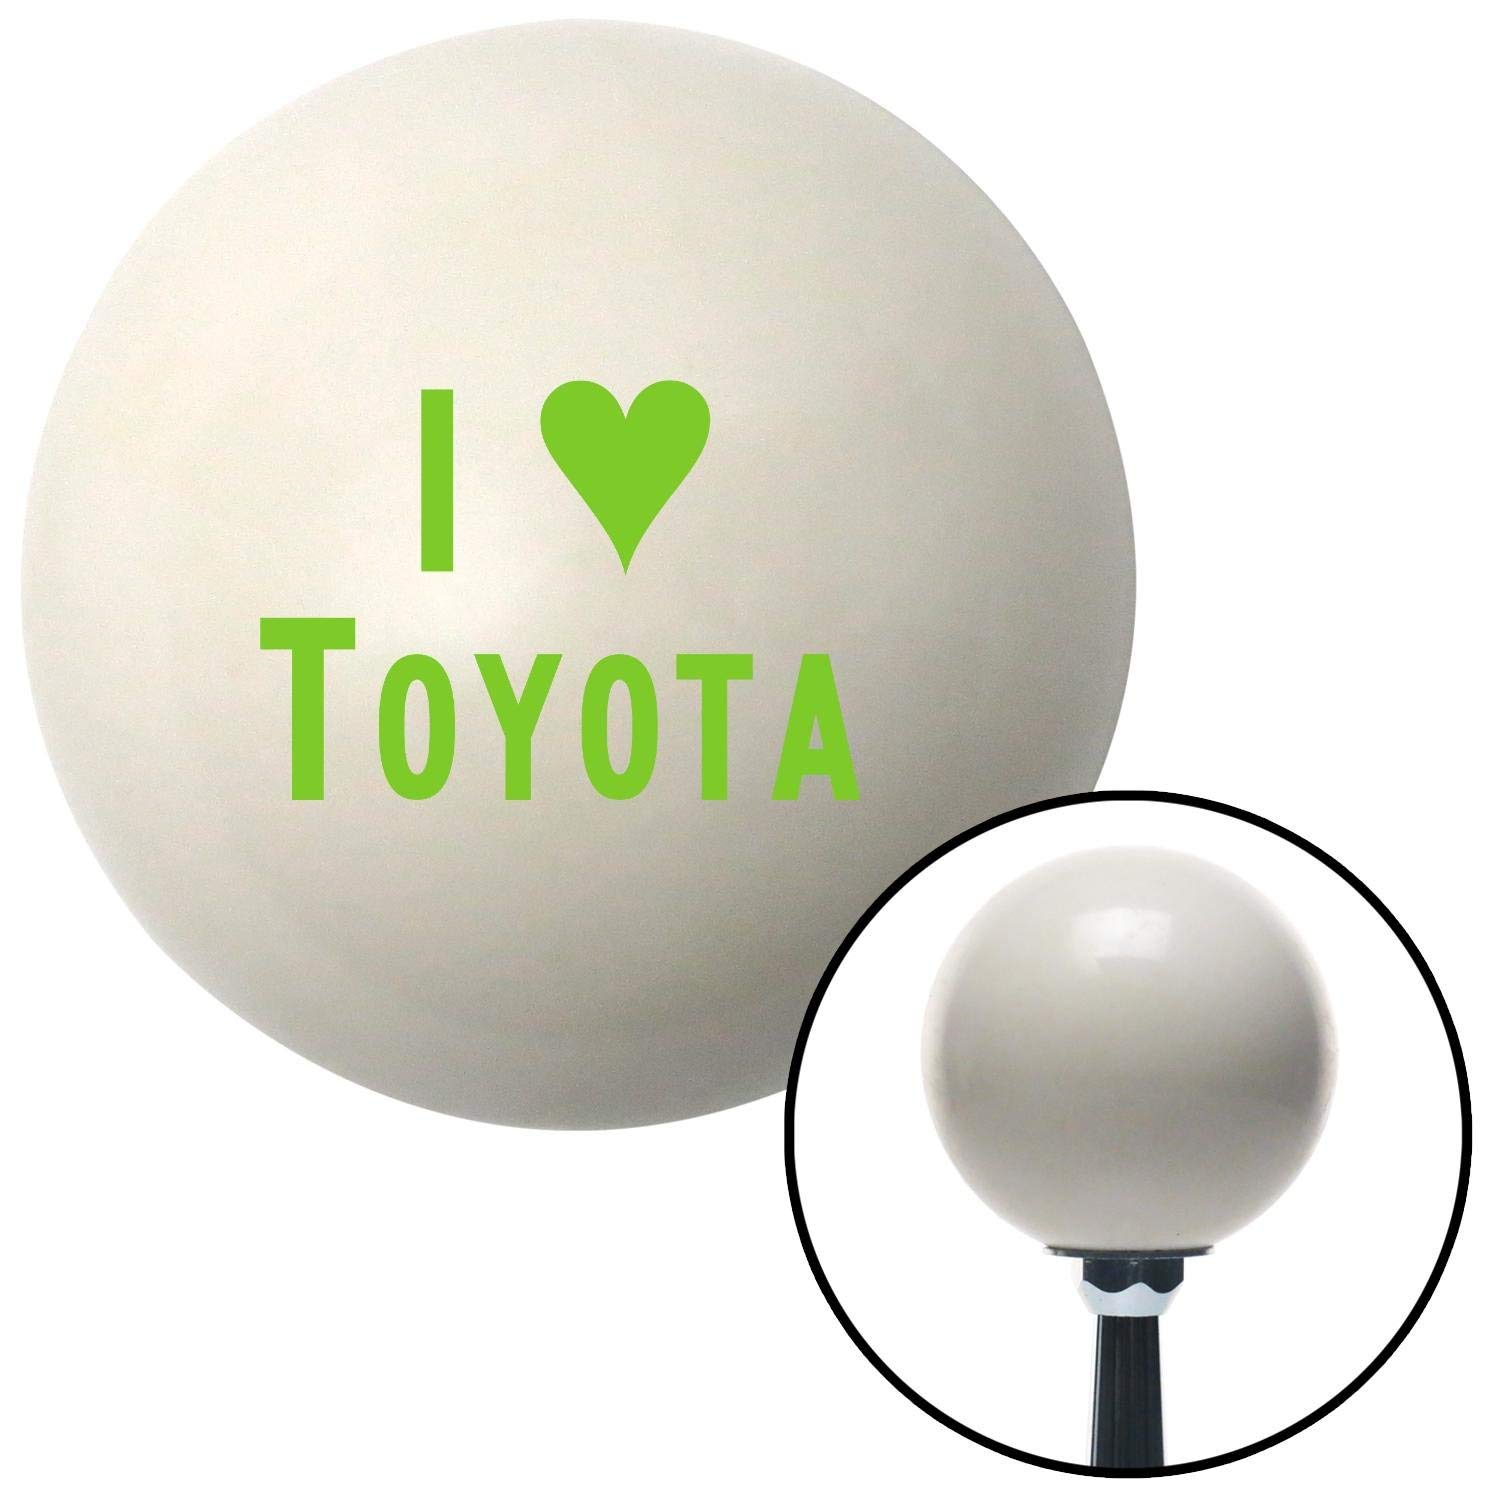 American Shifter 31531 Ivory Shift Knob with 16mm x 1.5 Insert Green I 3 Toyota